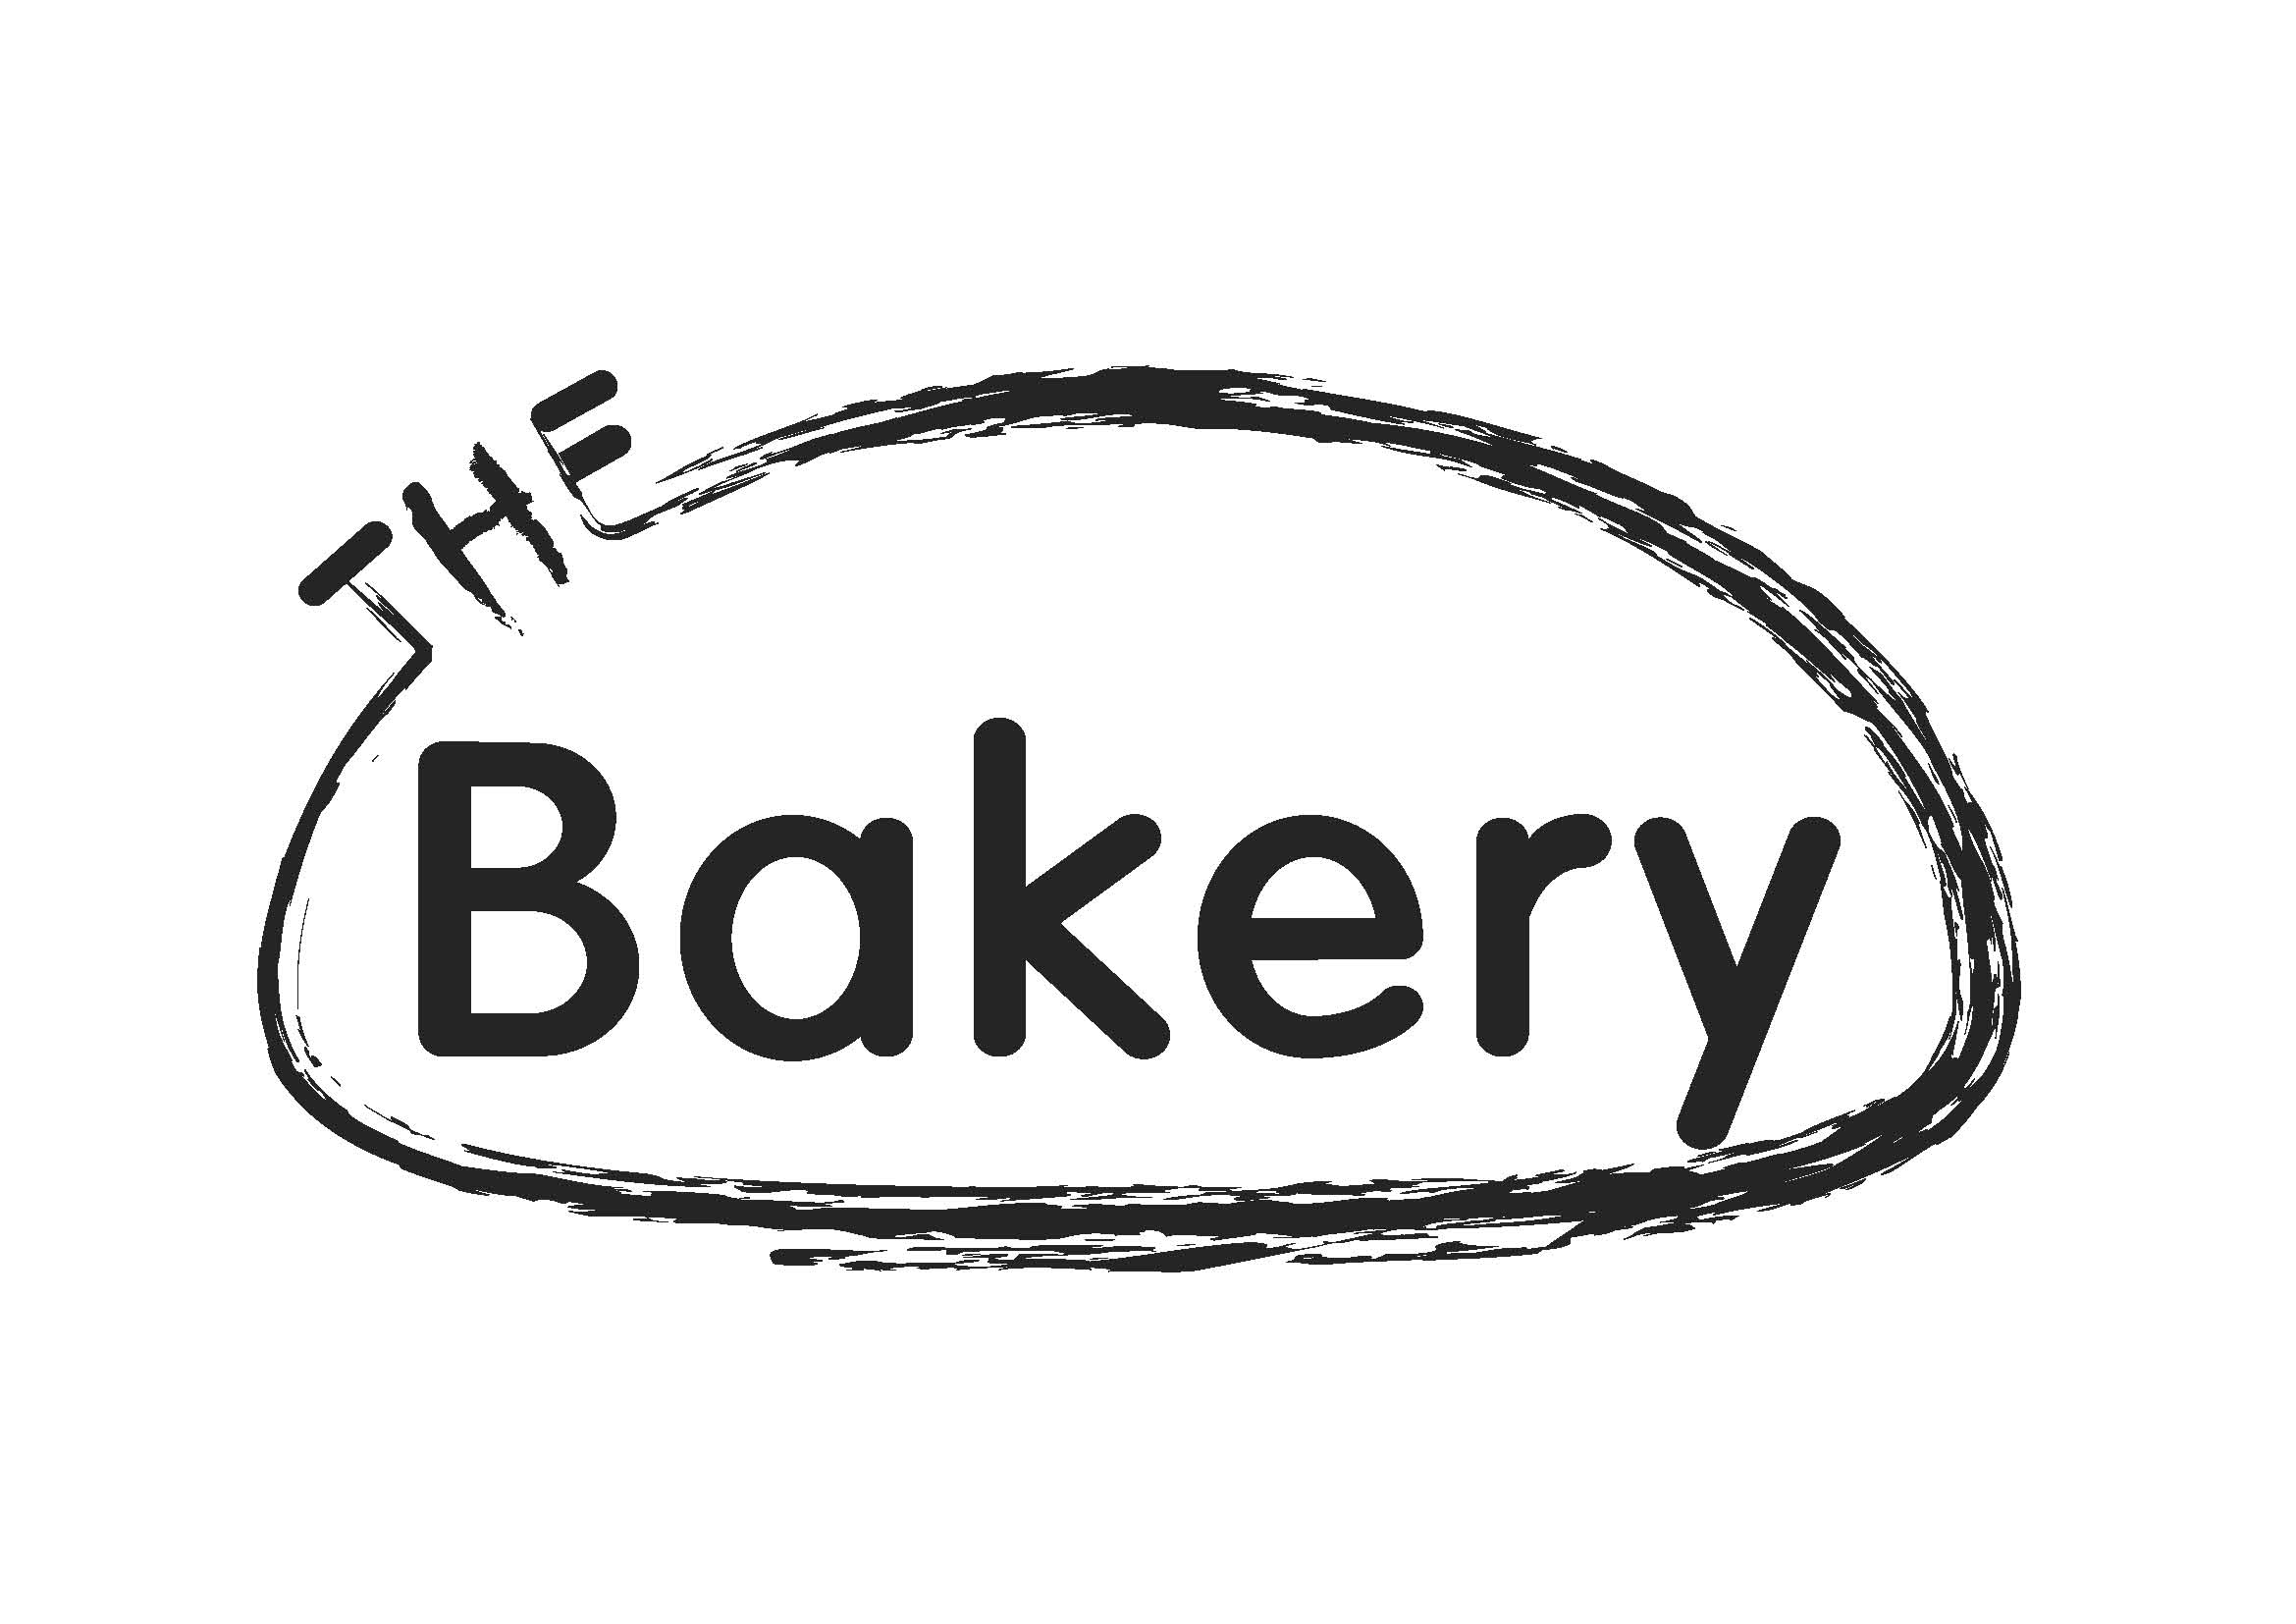 The Bakery to Unveil a Range of Free Tools for Lighting ...bakery logo 